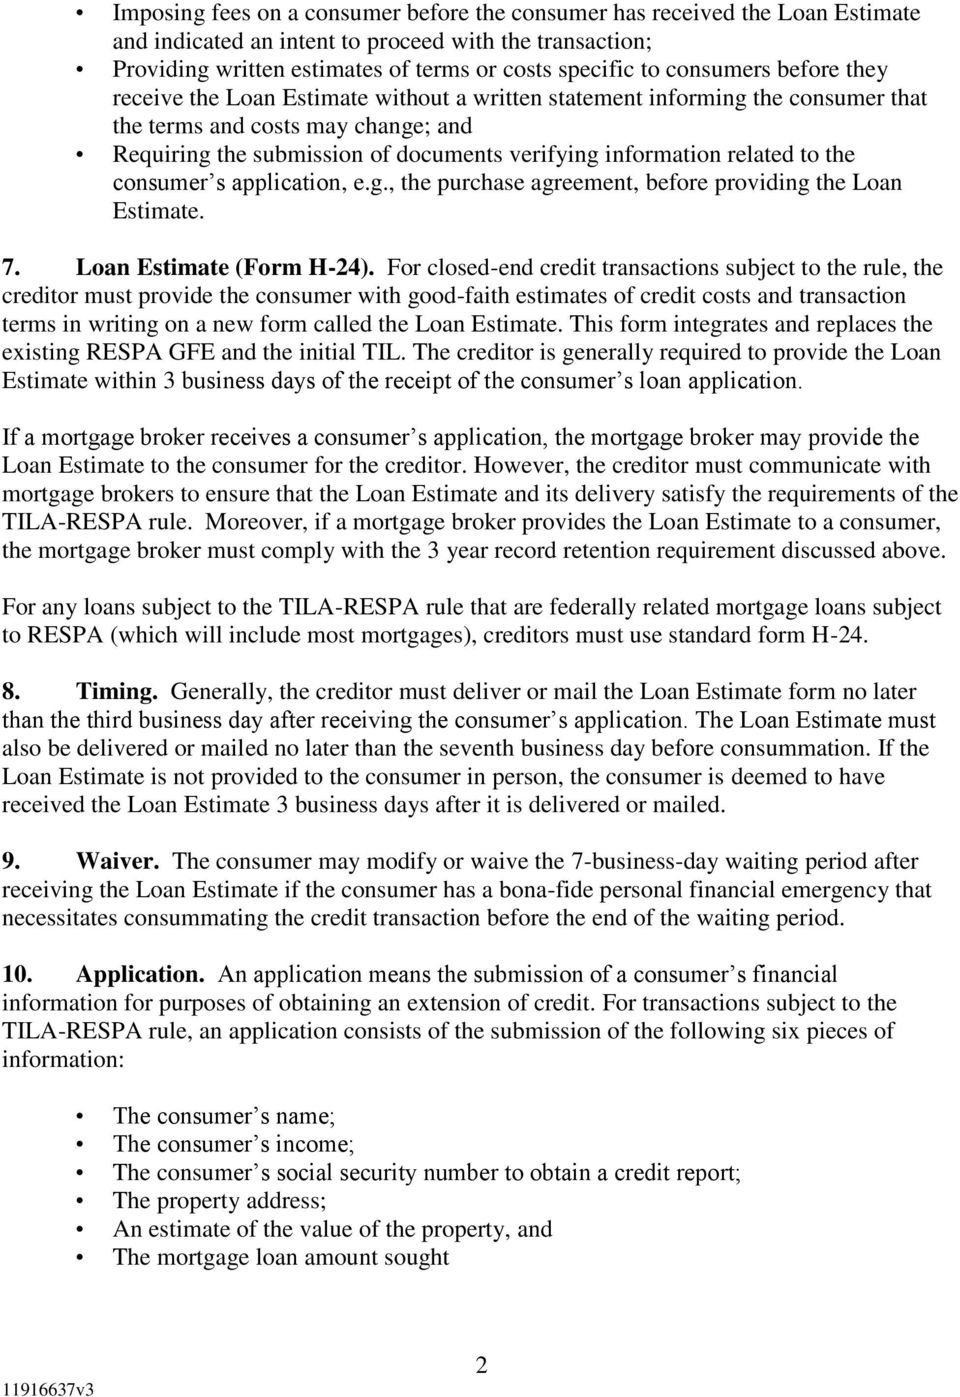 related to the consumer s application, e.g., the purchase agreement, before providing the Loan Estimate. 7. Loan Estimate (Form H-24).